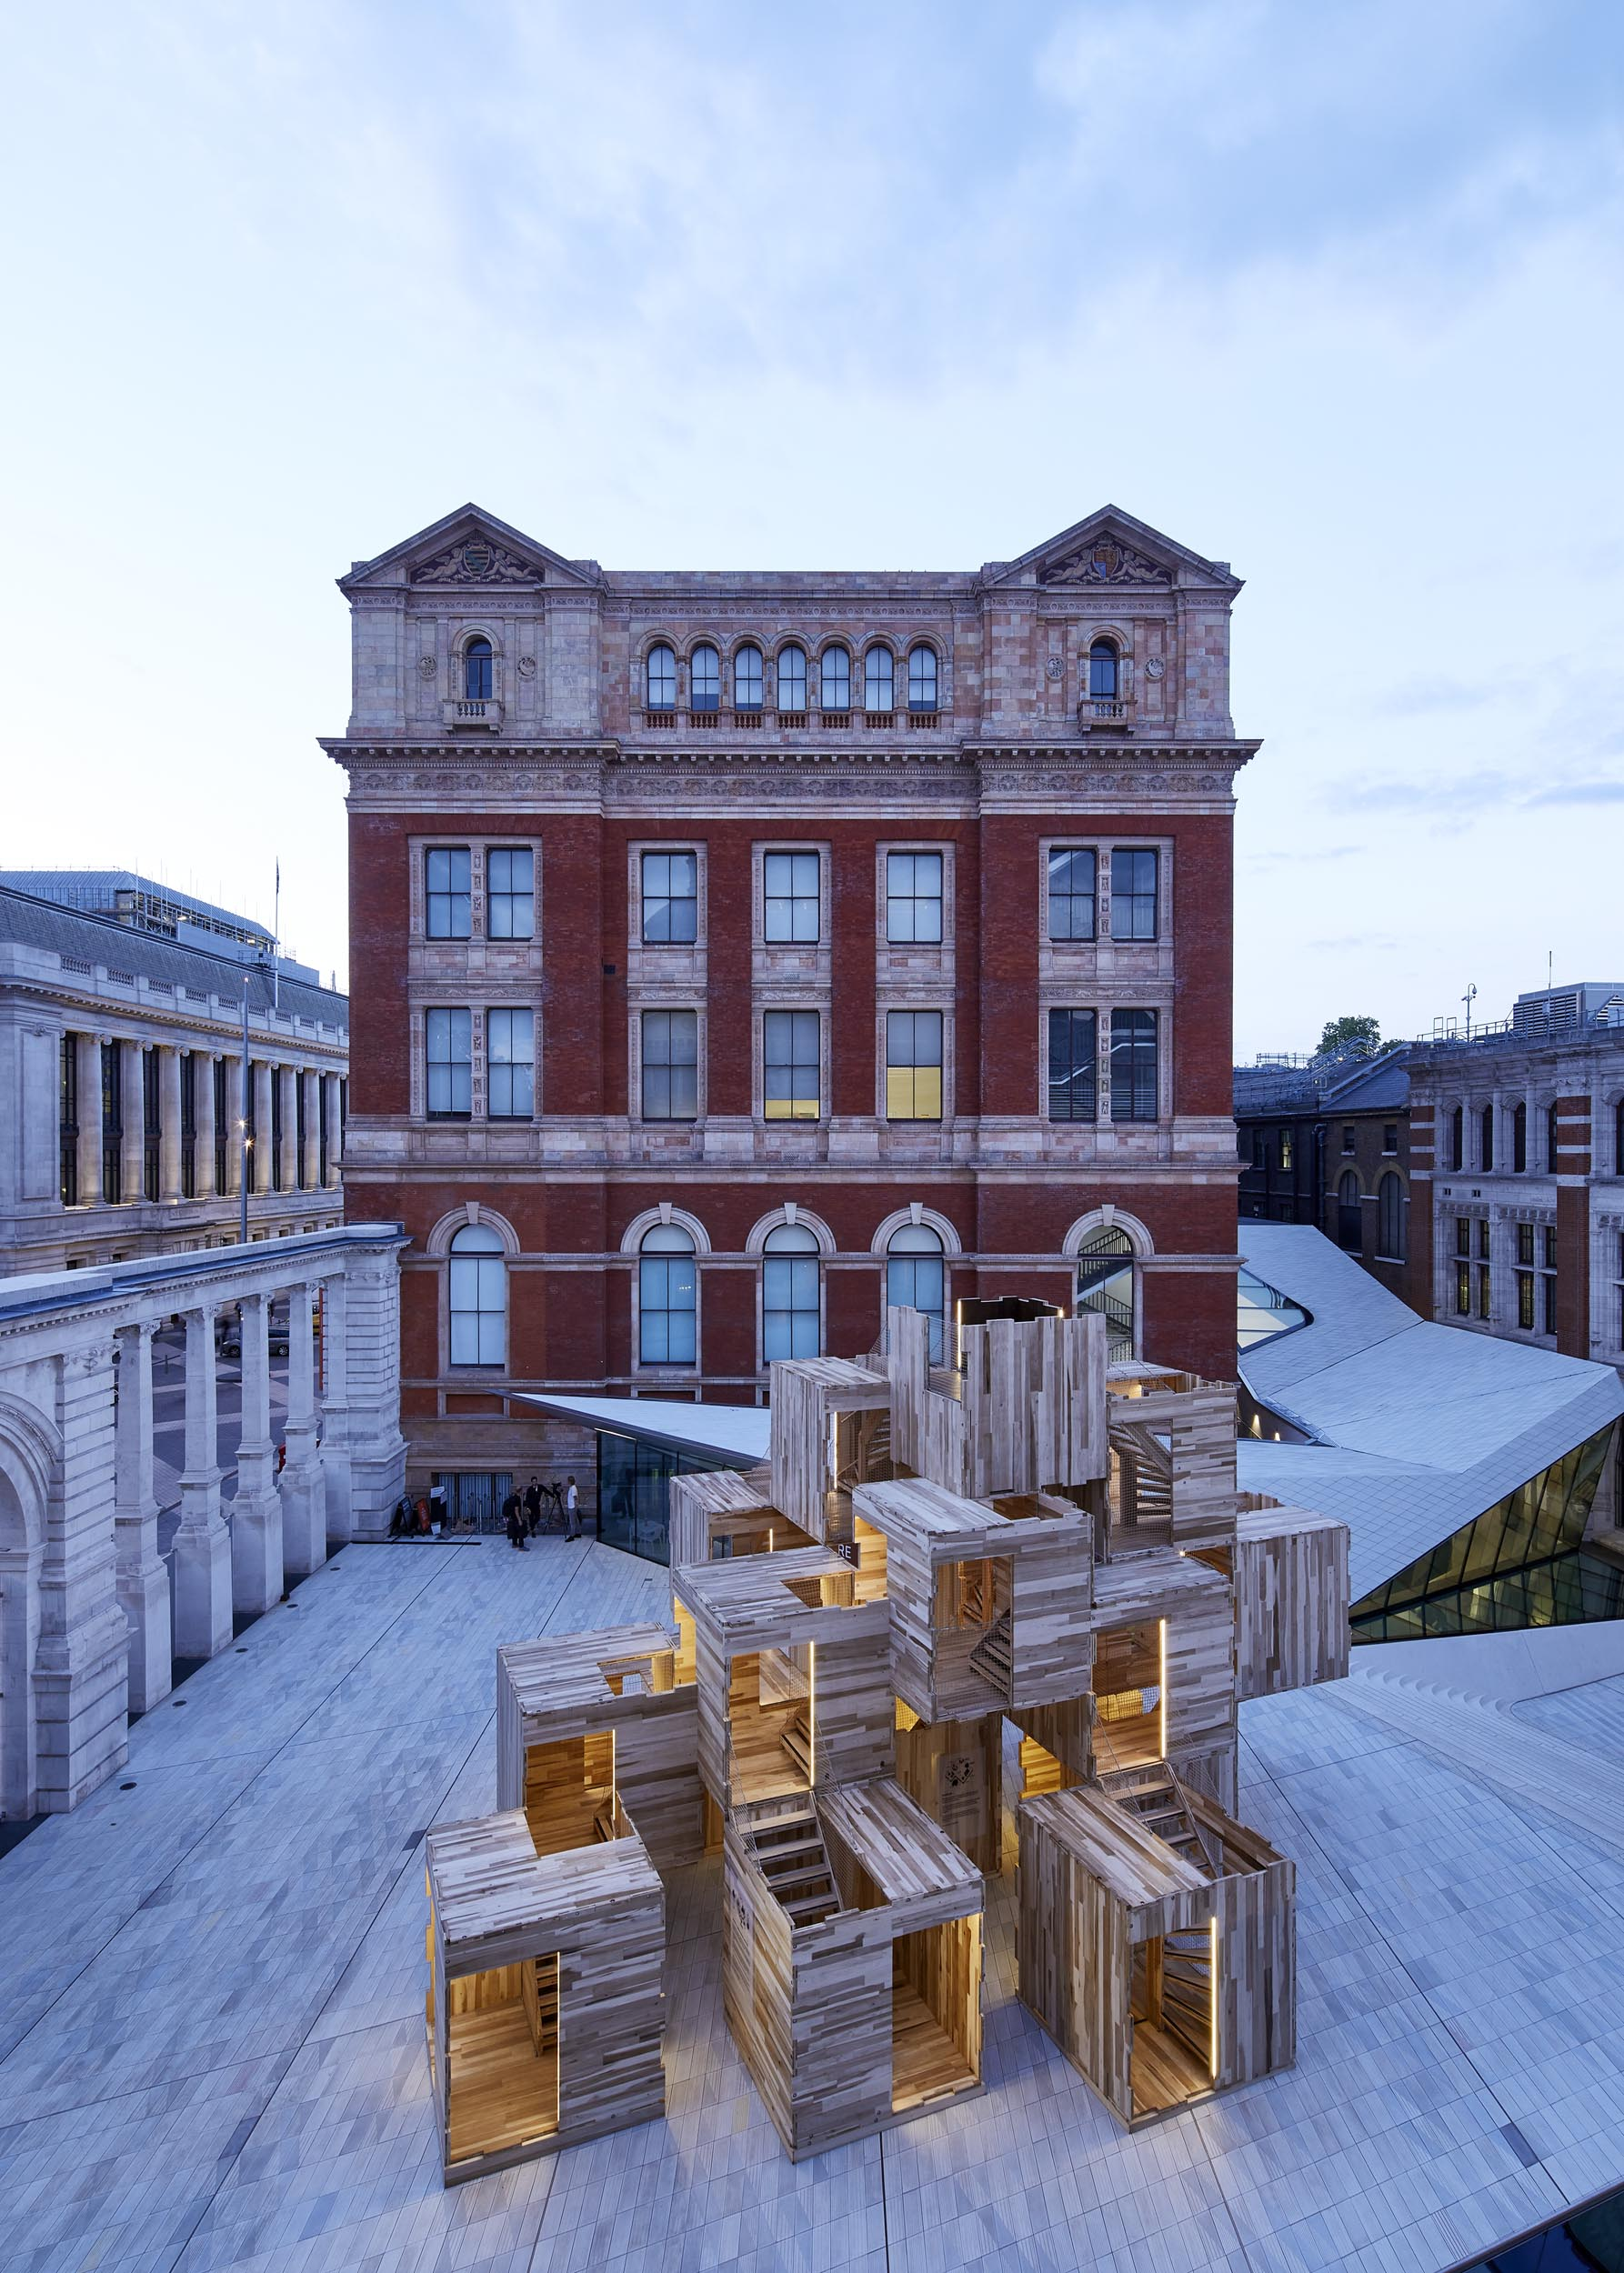 MULTIPLY, V&A MUSEUM: WAUGH THISTLETON ARCHITECTS